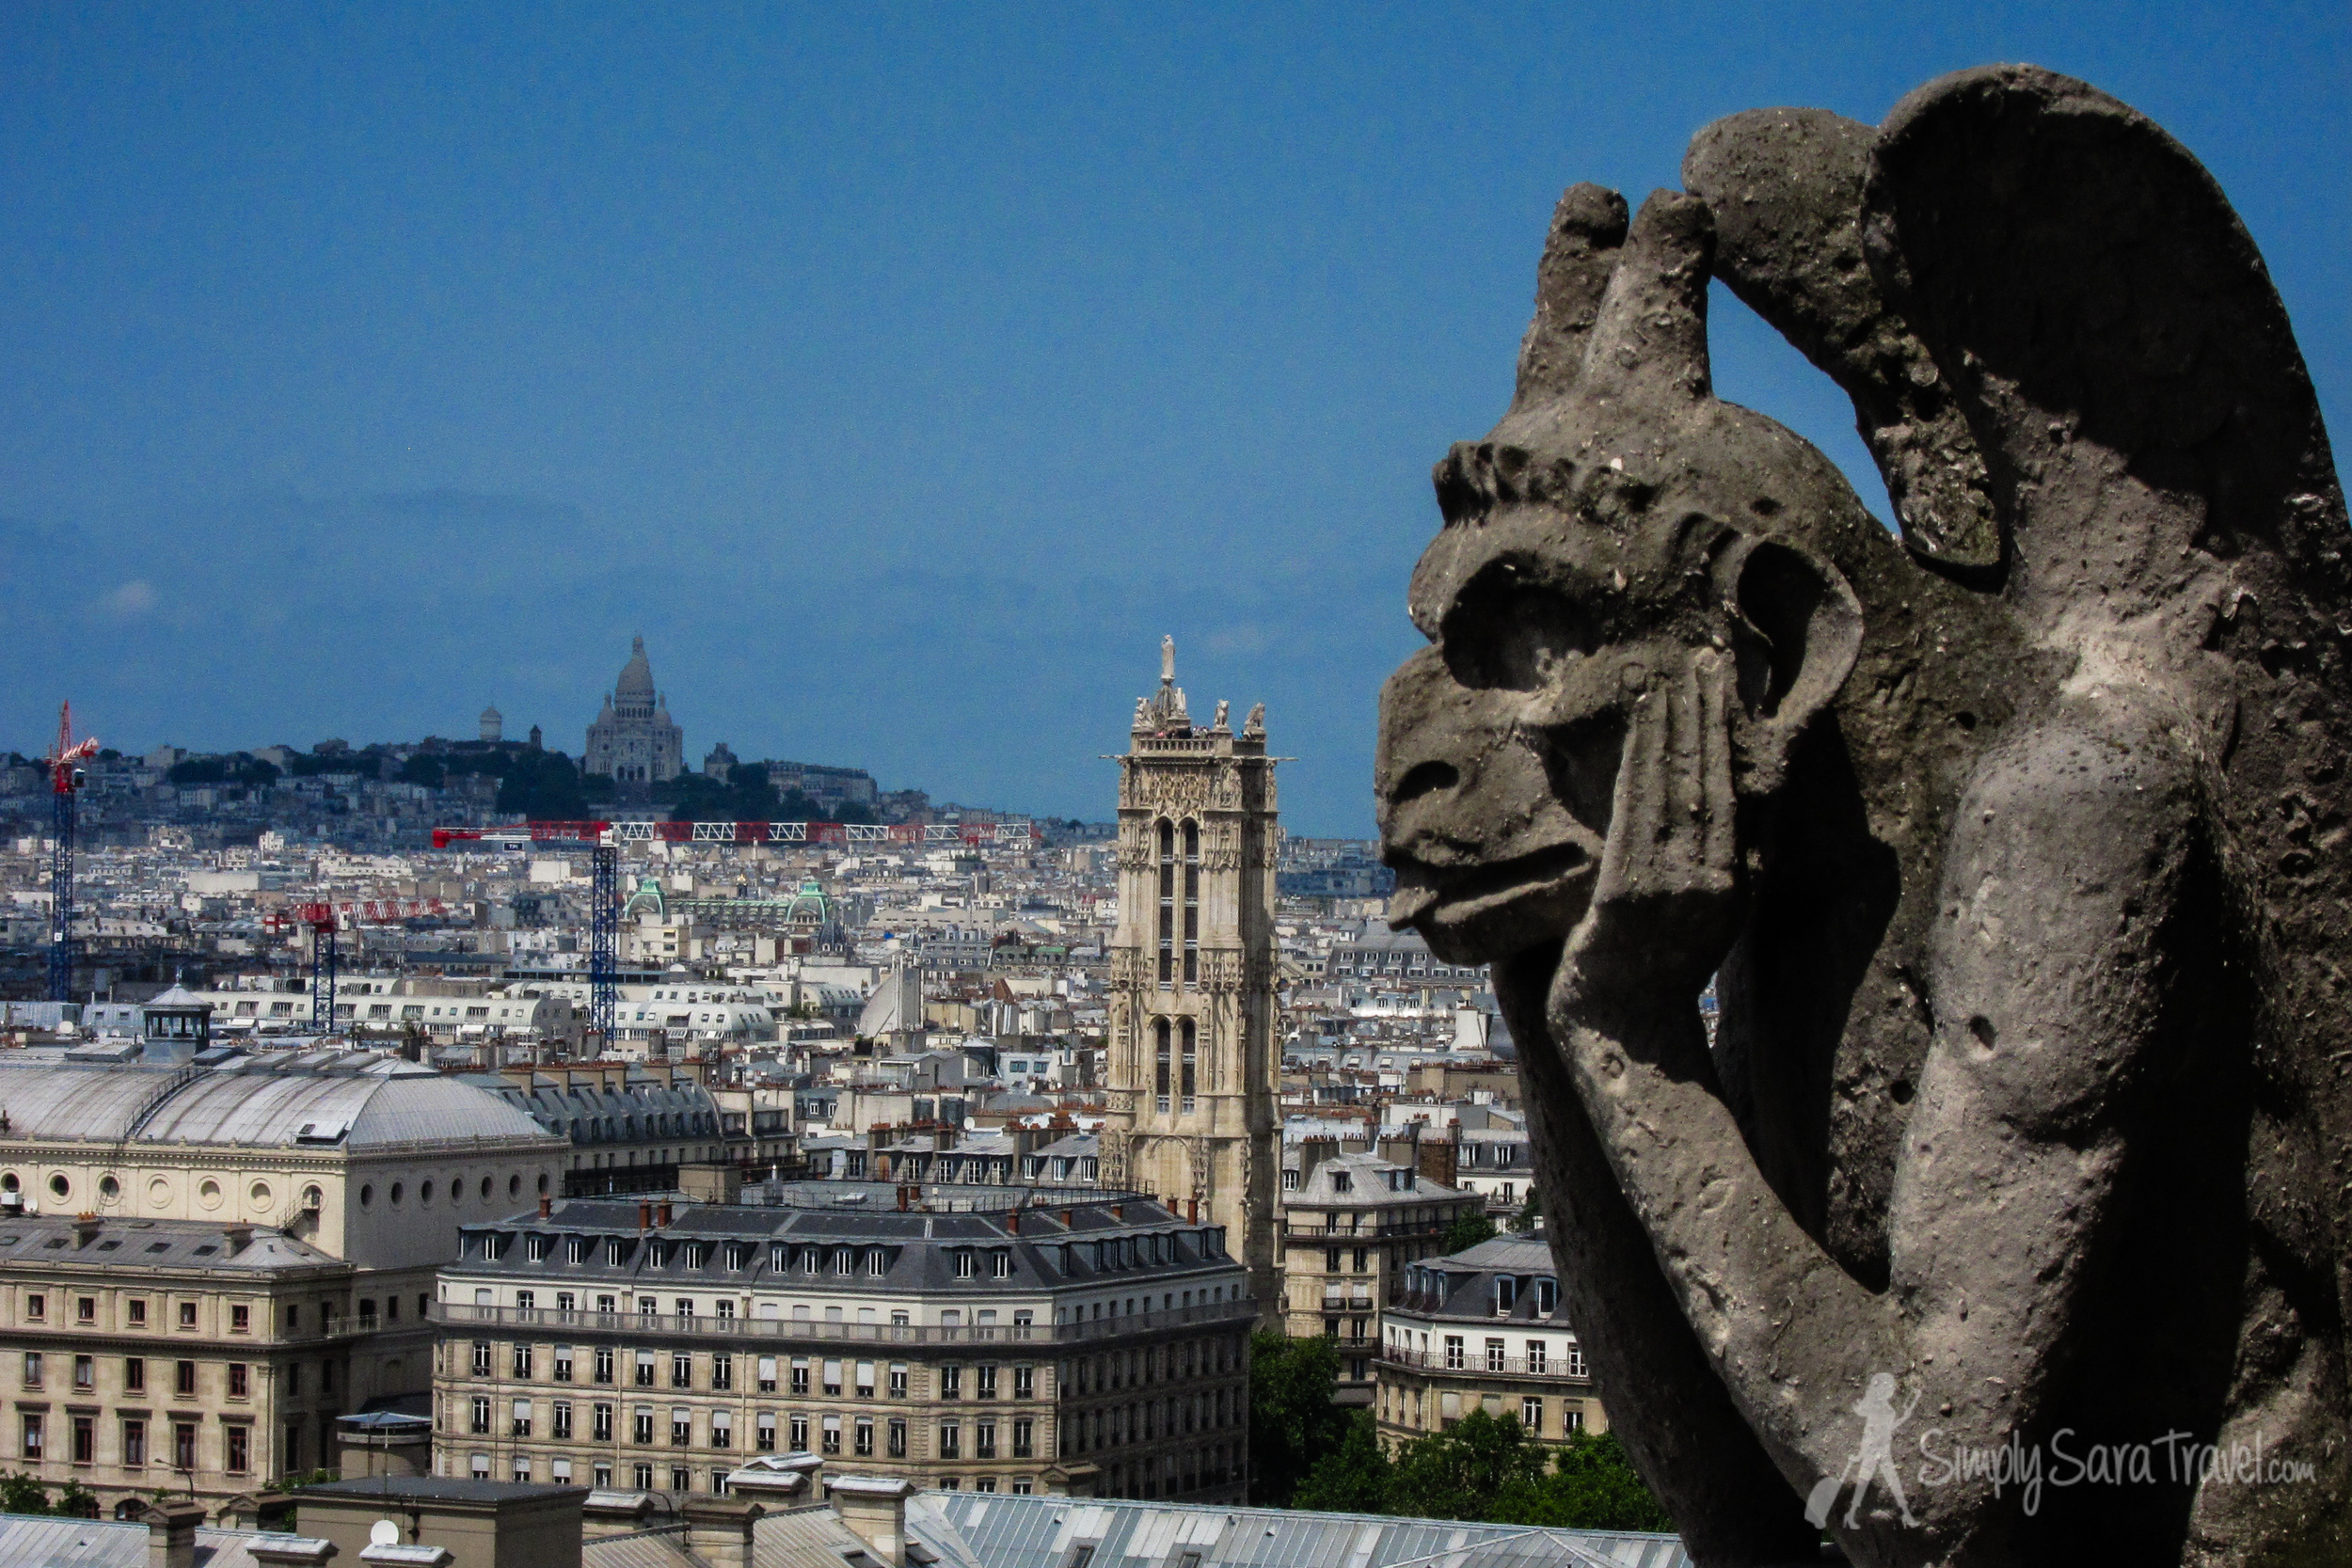 Another of my favorite views, from the tower of  Notre Dame